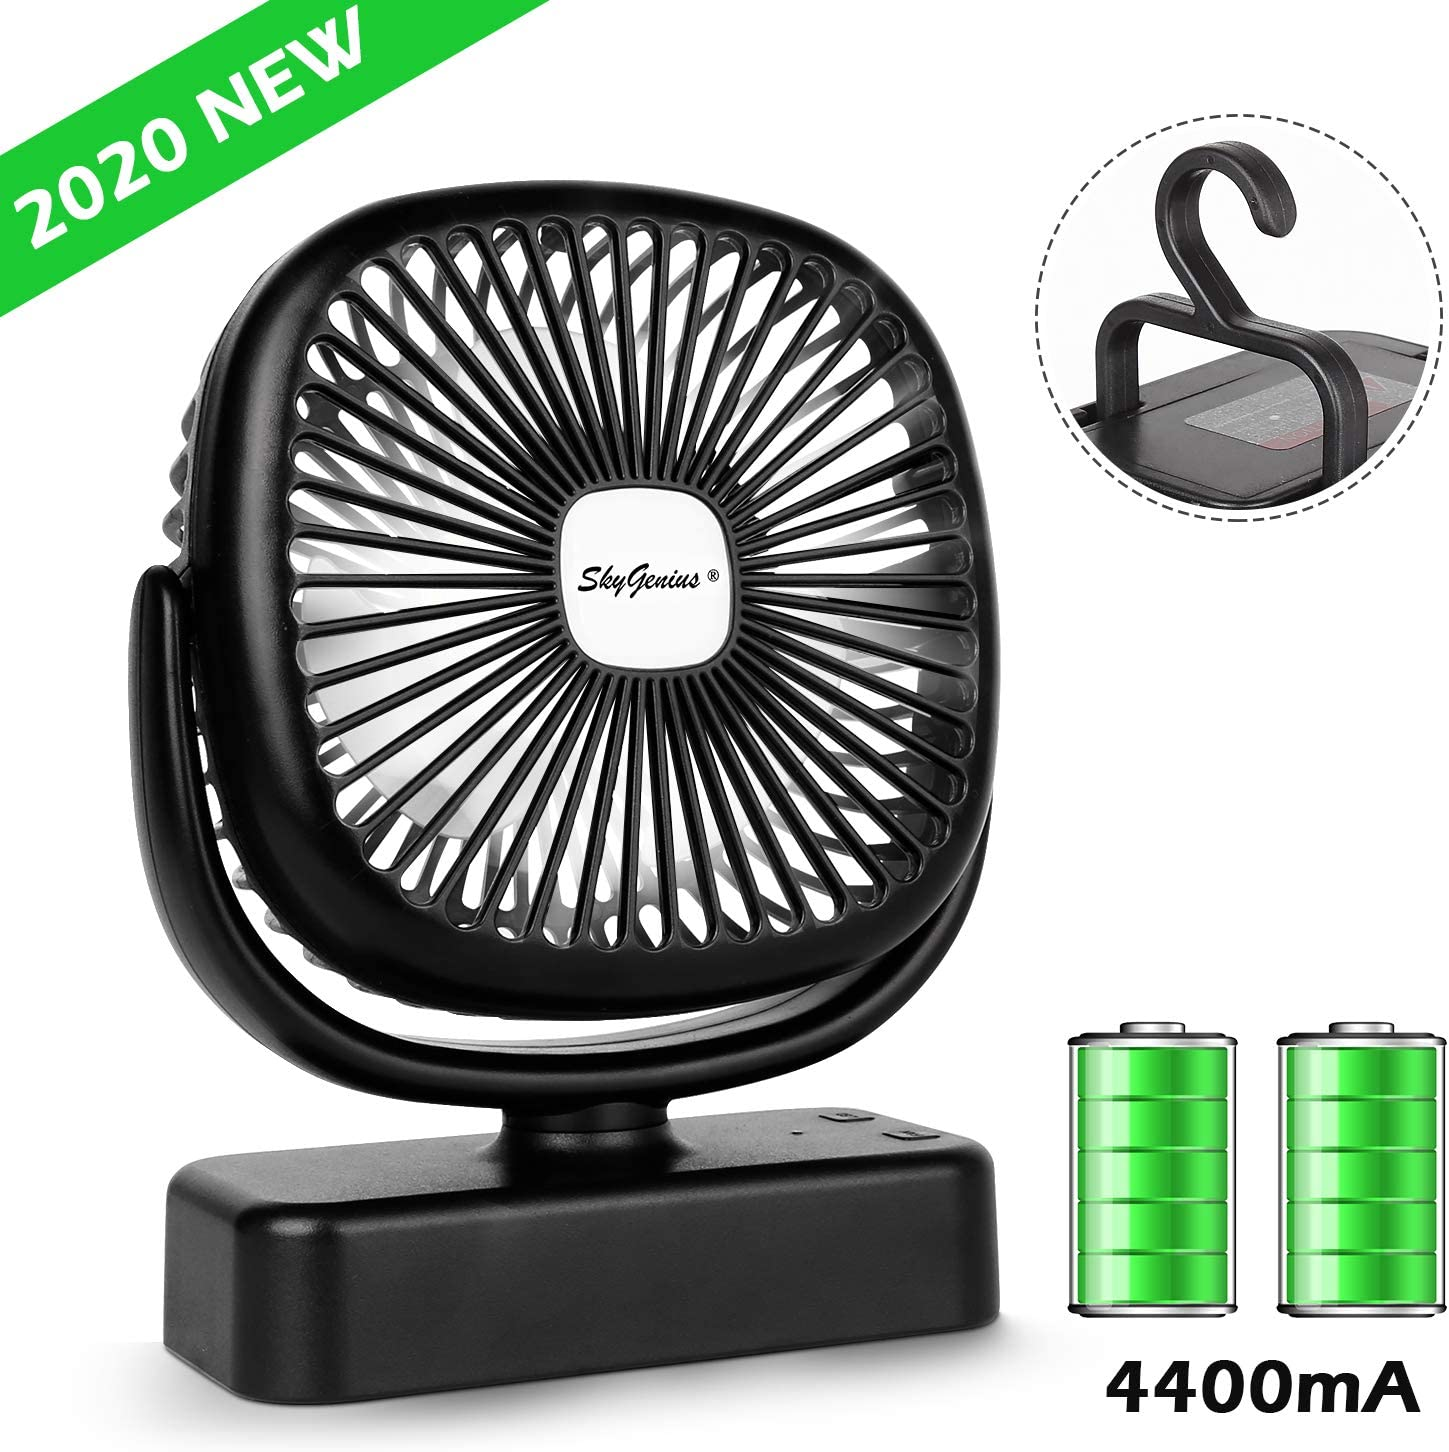 Portable LED Camping Lattern with Tent Fan, 4400mA Battery Operated Fans Mini Desk Fan for Office Home Kitchen